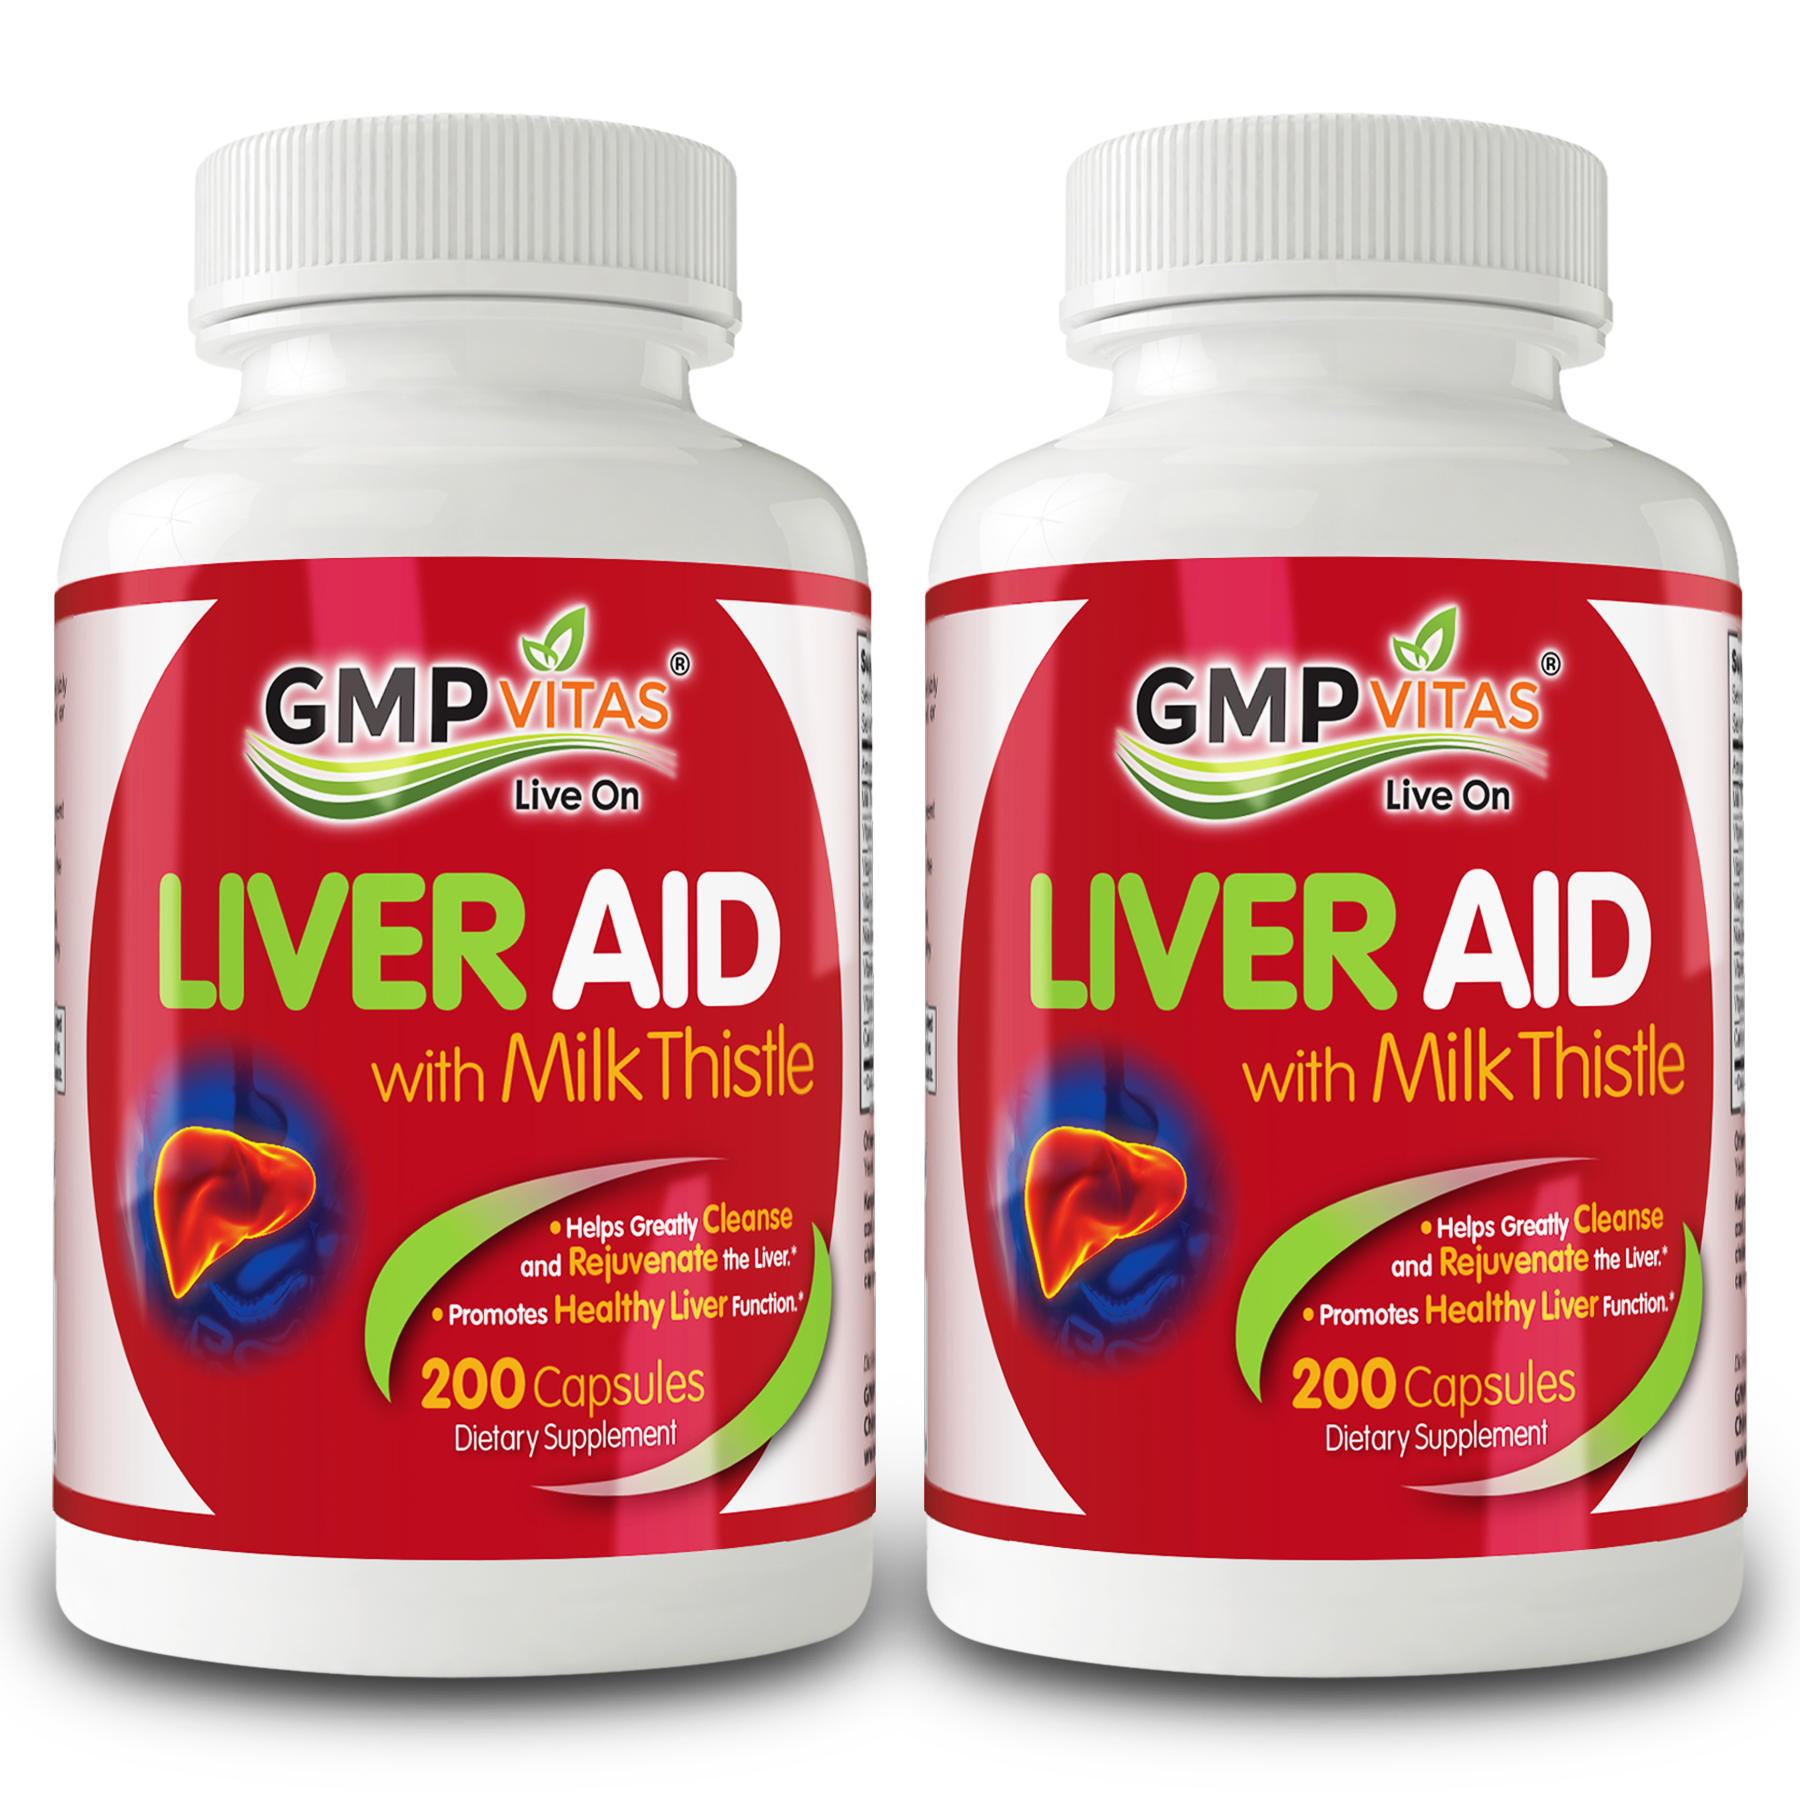 15% offGMP Vitas Liver Aid With Milk Thistle 200 Capsules Bundle